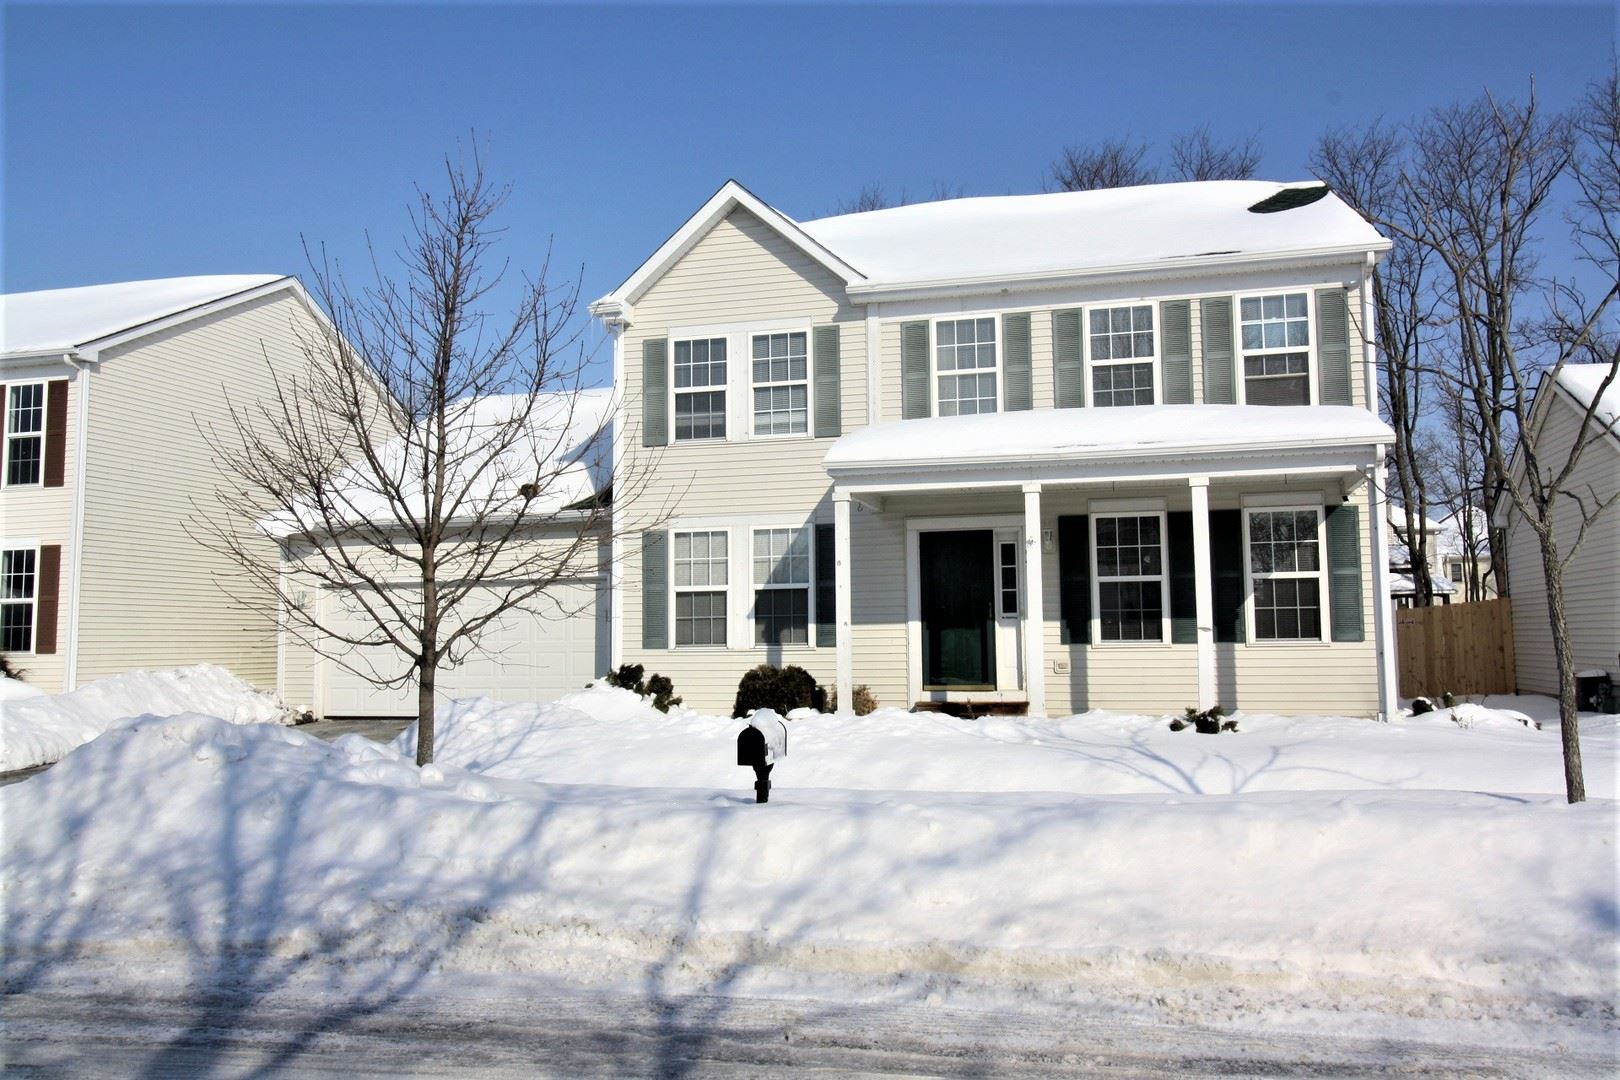 Photo of 704 Hoover Drive, Oswego, IL 60543 (MLS # 10999587)